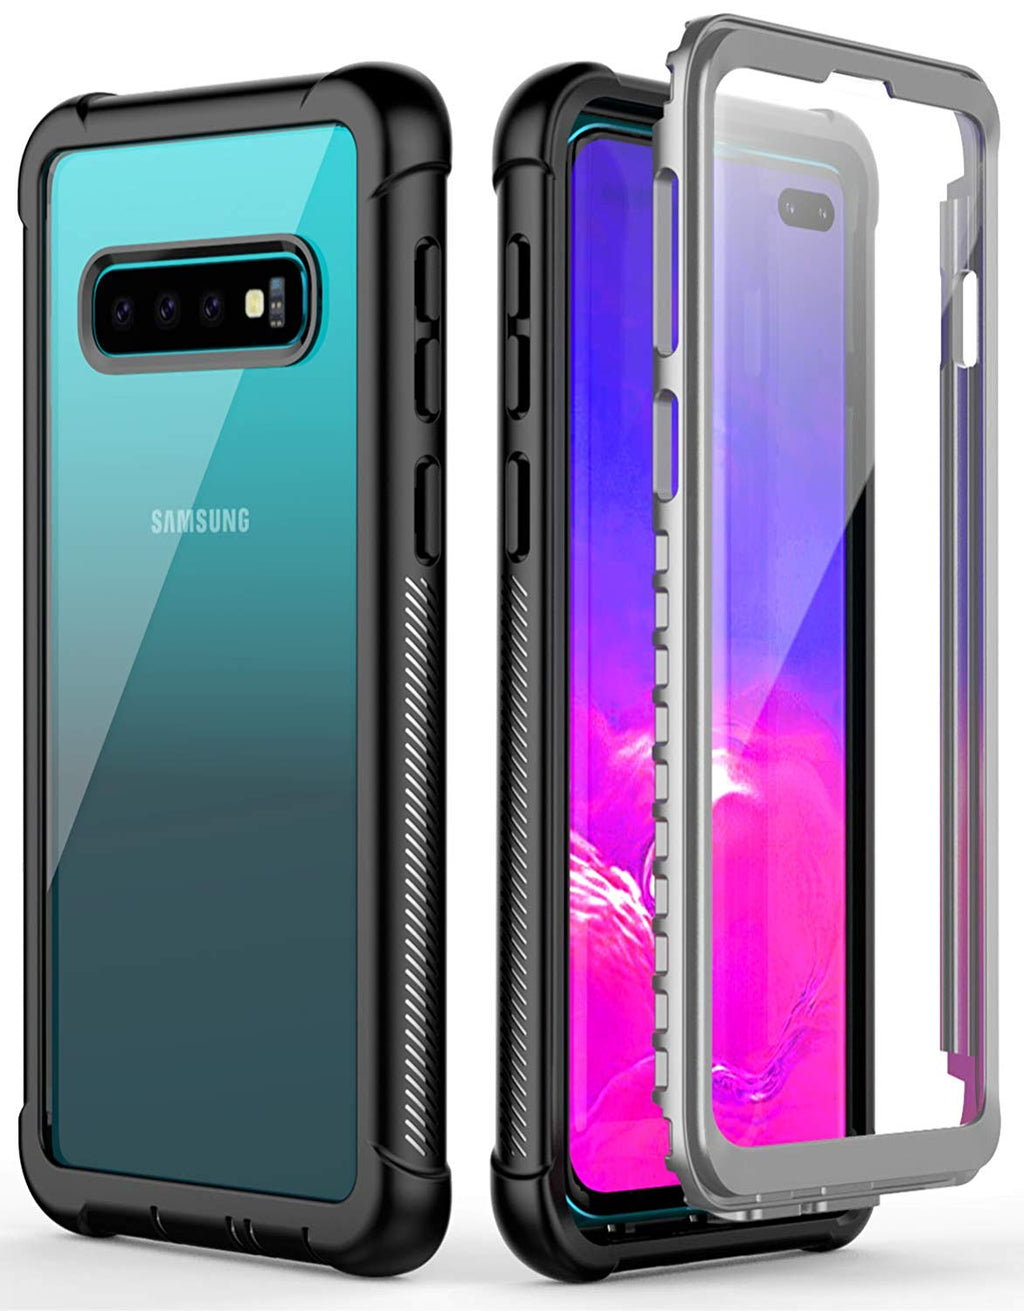 UDUN Full-Body Rugged Case with Built-in Screen Protetor for Samsung Galaxy S10 Plus - Gearlyst